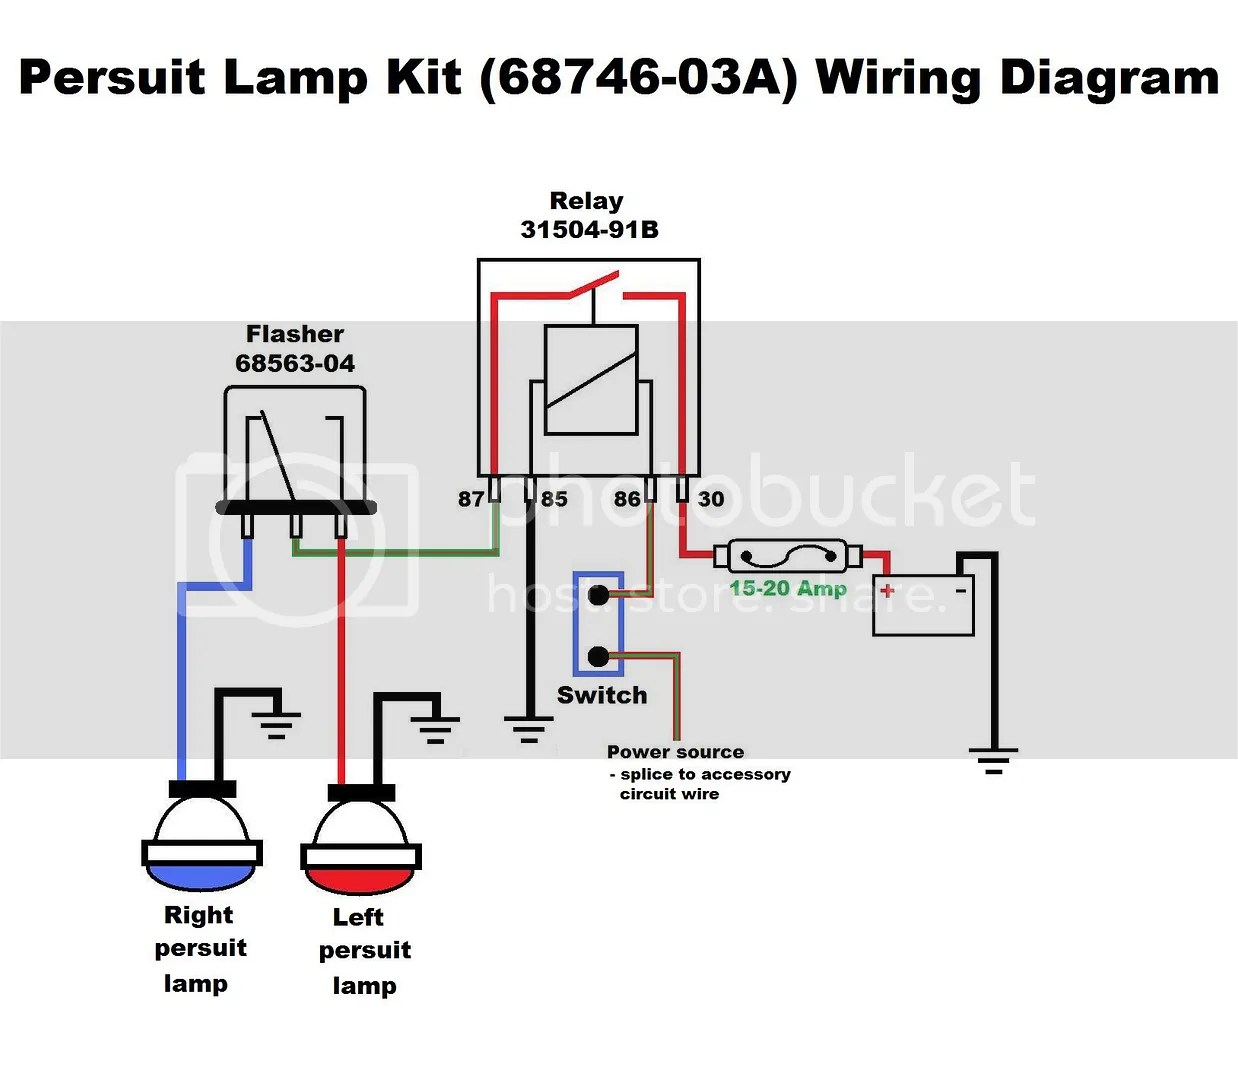 Persuit Lamp Kit Wiring Diagram Photo By Fxd Rider